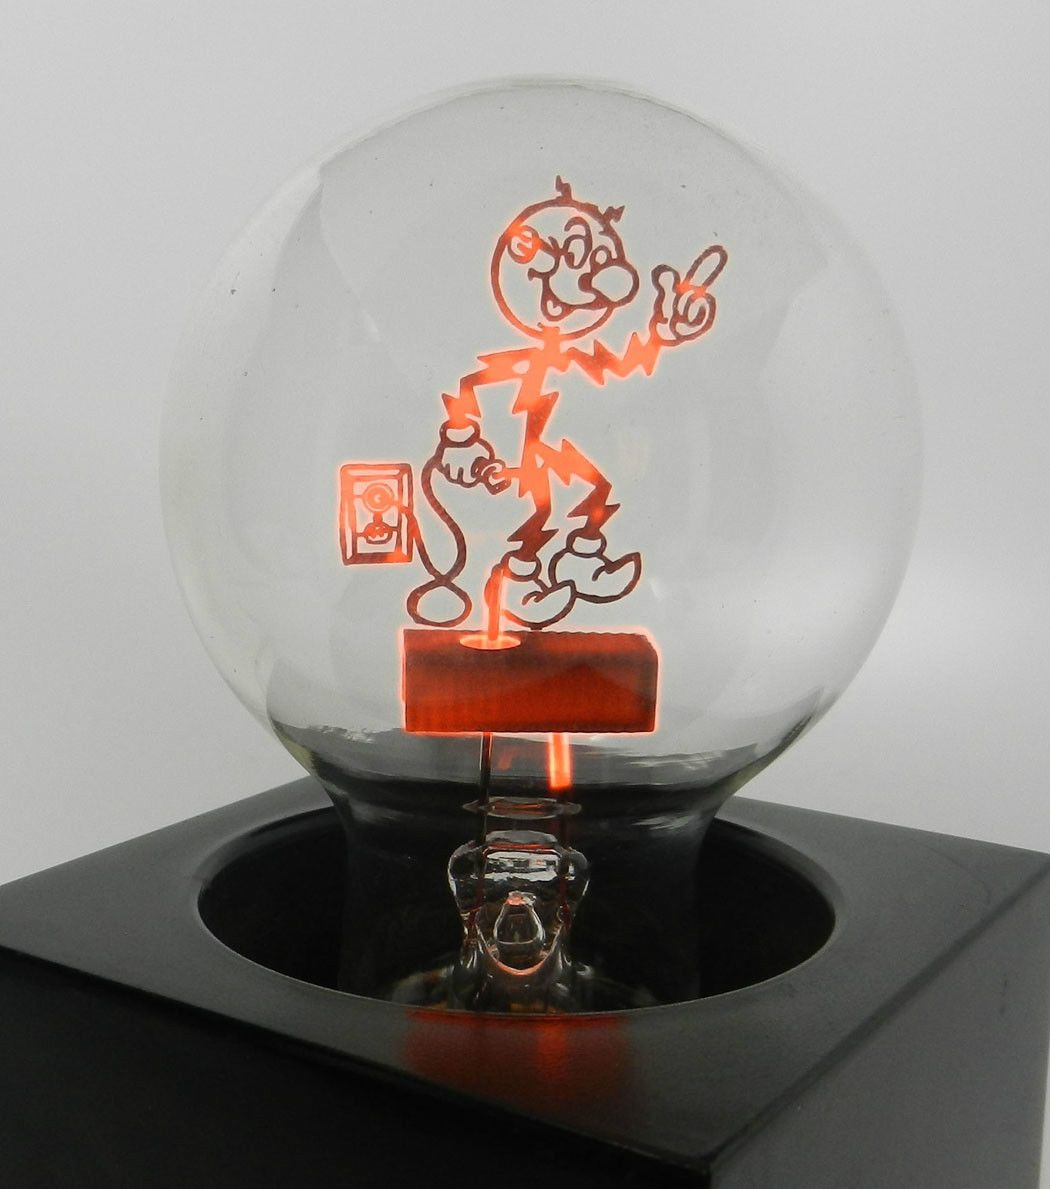 Reddy Kilowatt Aerolux Figural Filament Light Bulb And Lamp Working Condition Filament Bulb Lighting Filament Lighting Light Bulb